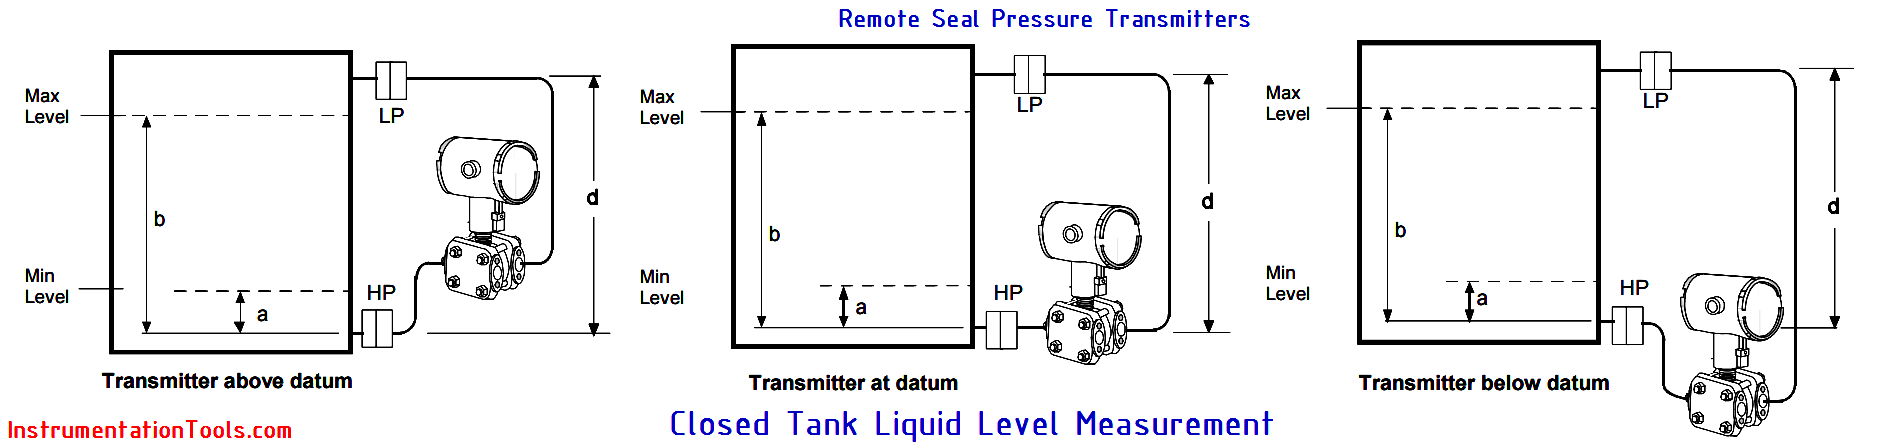 Remote Seal Pressure Transmitters